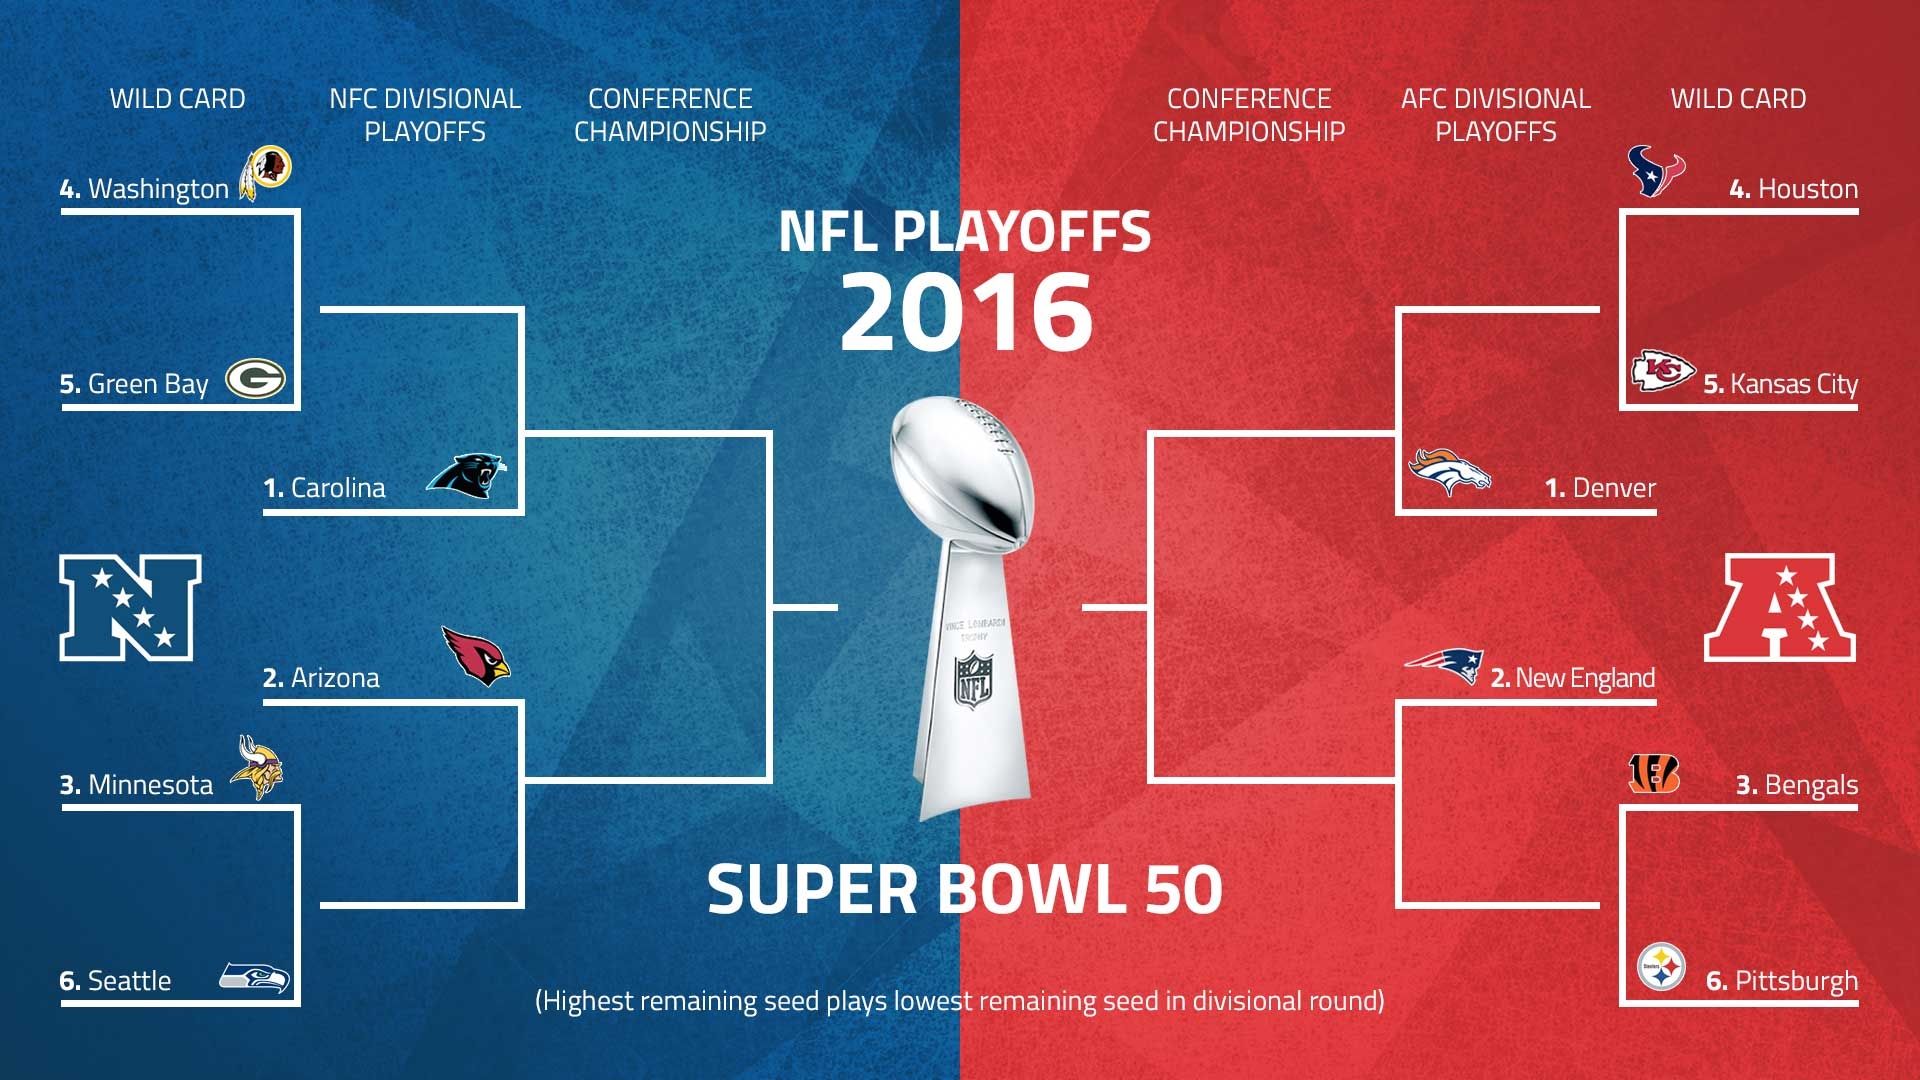 NFC PLAYOFF SCHEDULE